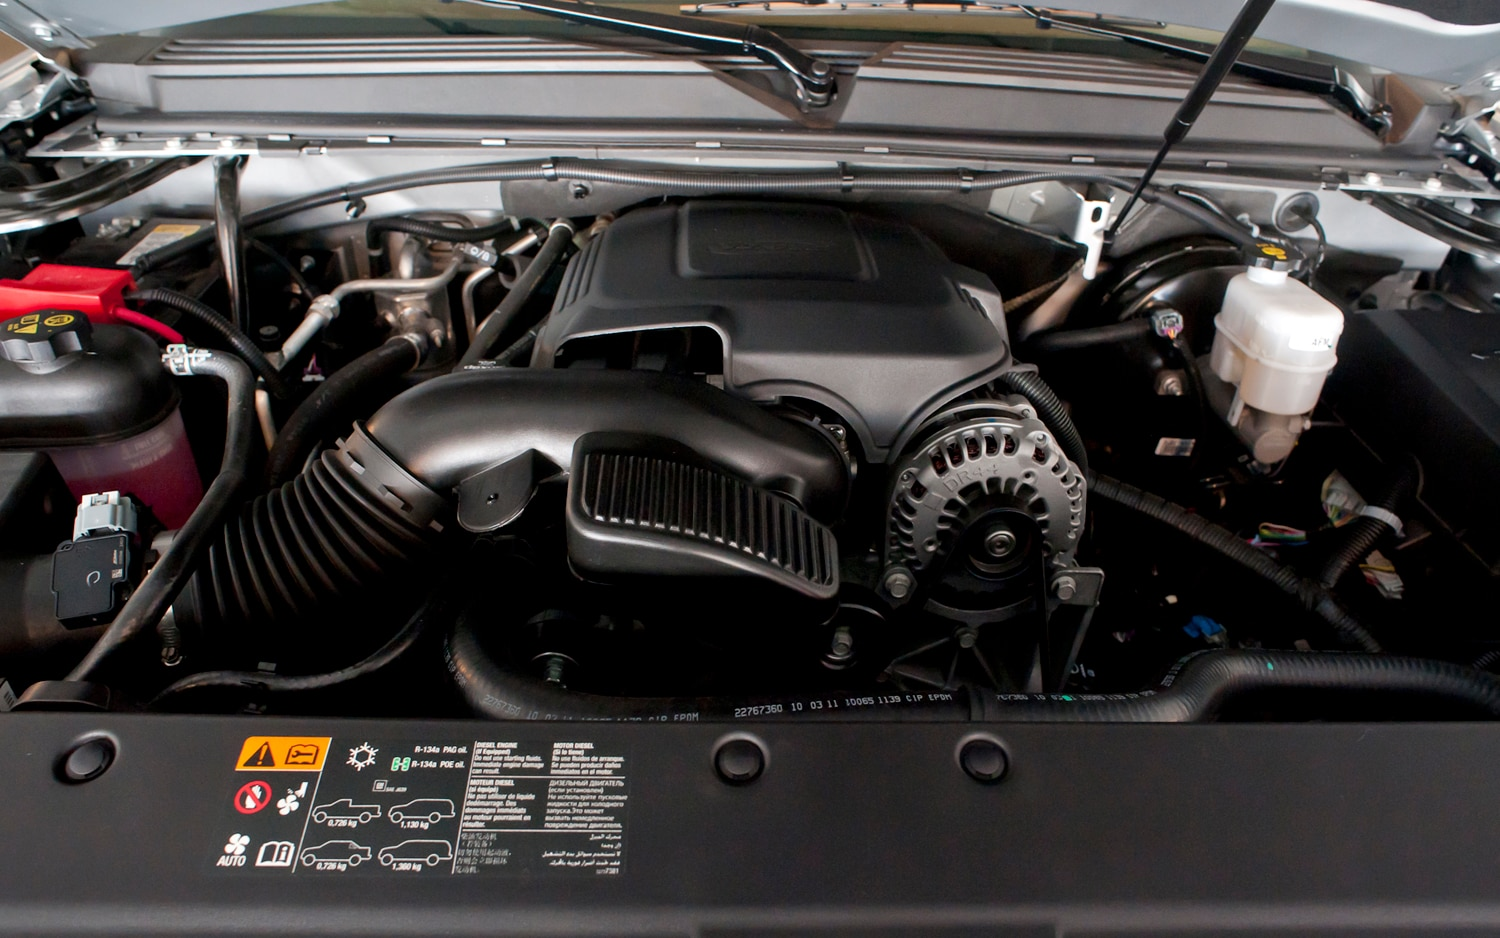 2012 Chevrolet Tahoe Engine